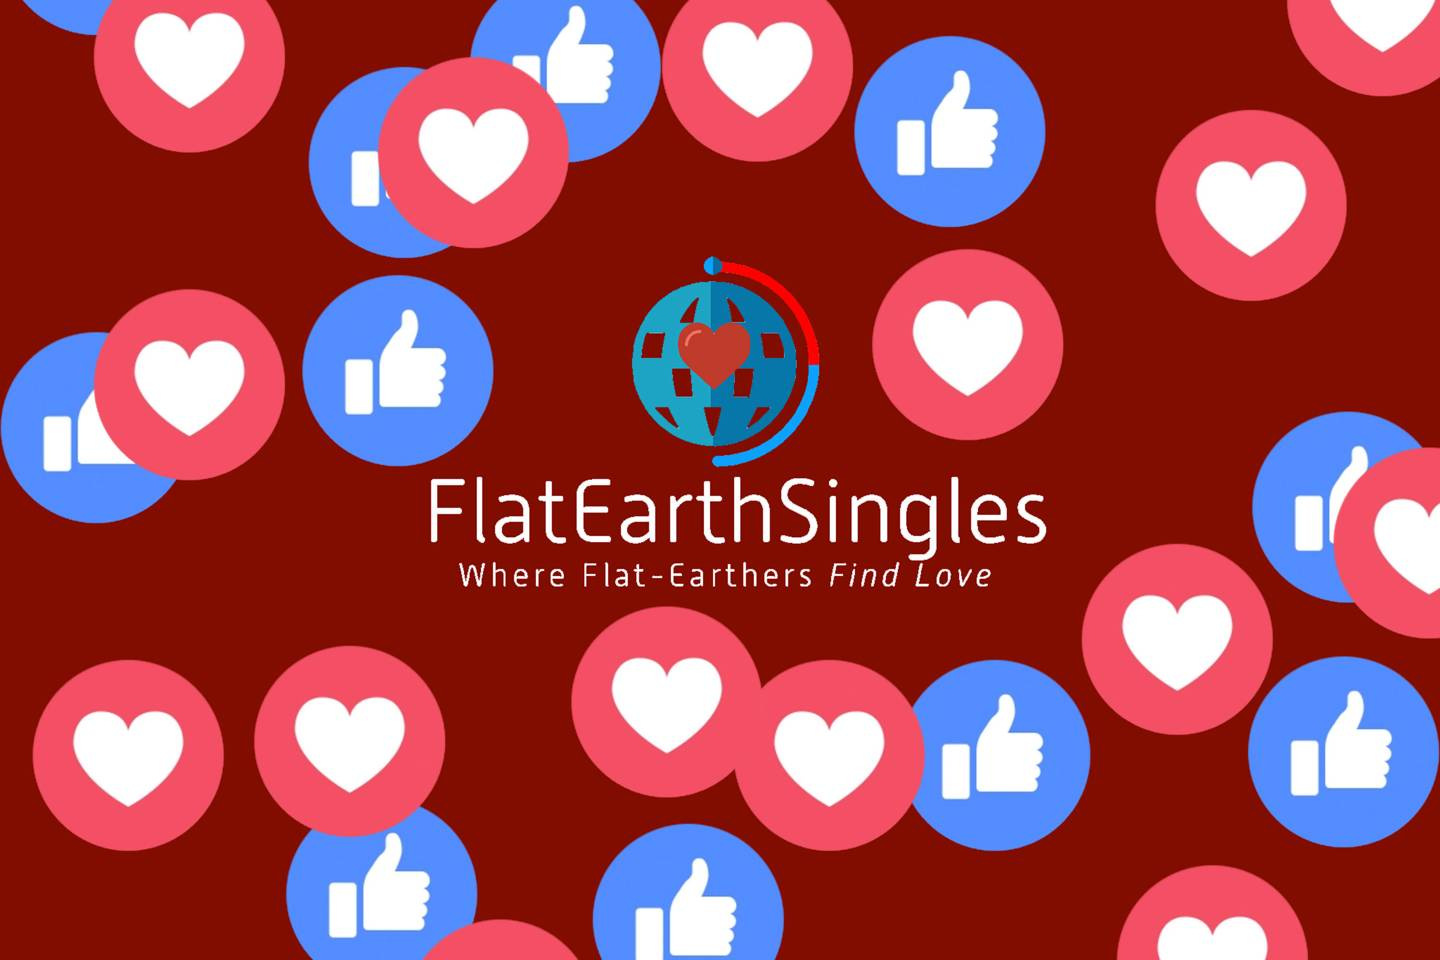 How Do You Find Love When You Believe The Earth Is Flat?